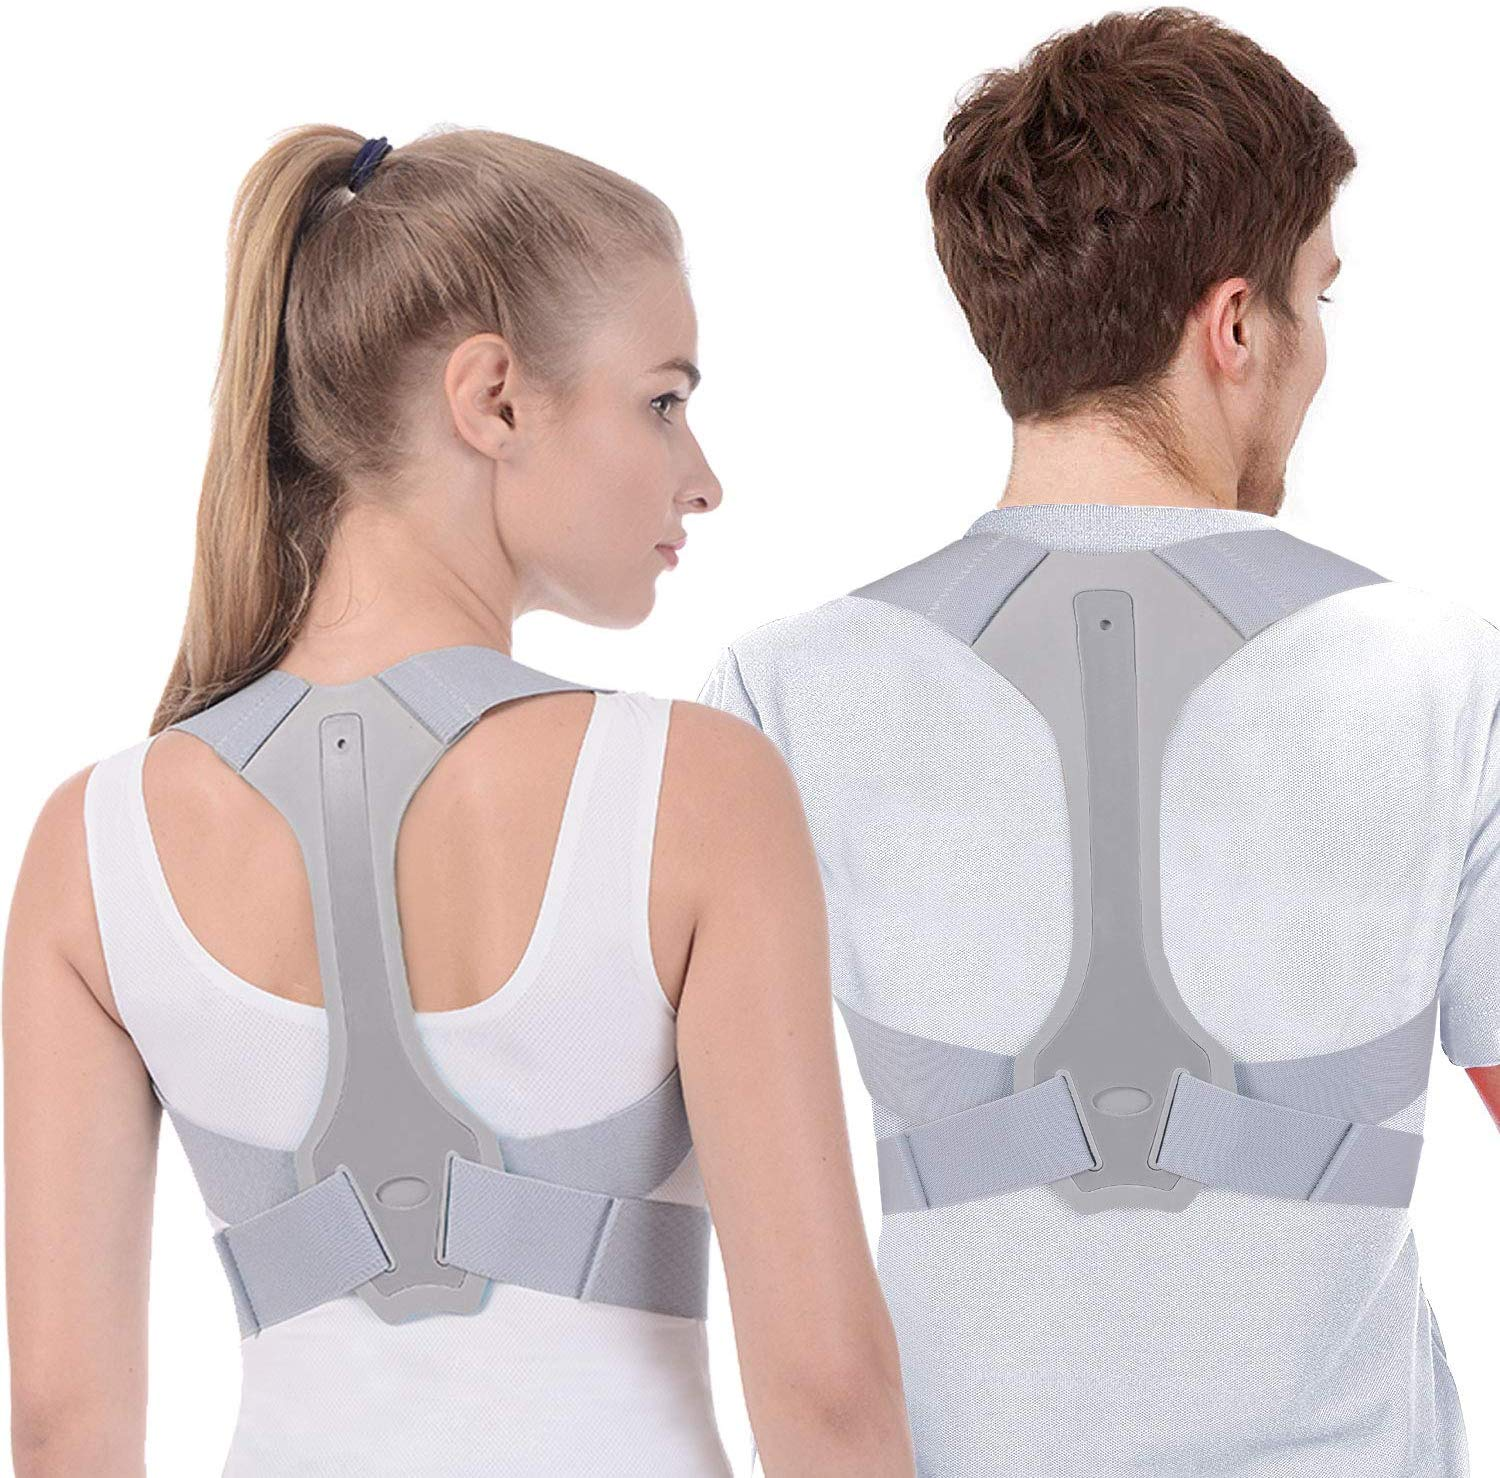 Anoopsyche Posture Corrector for Women and Men